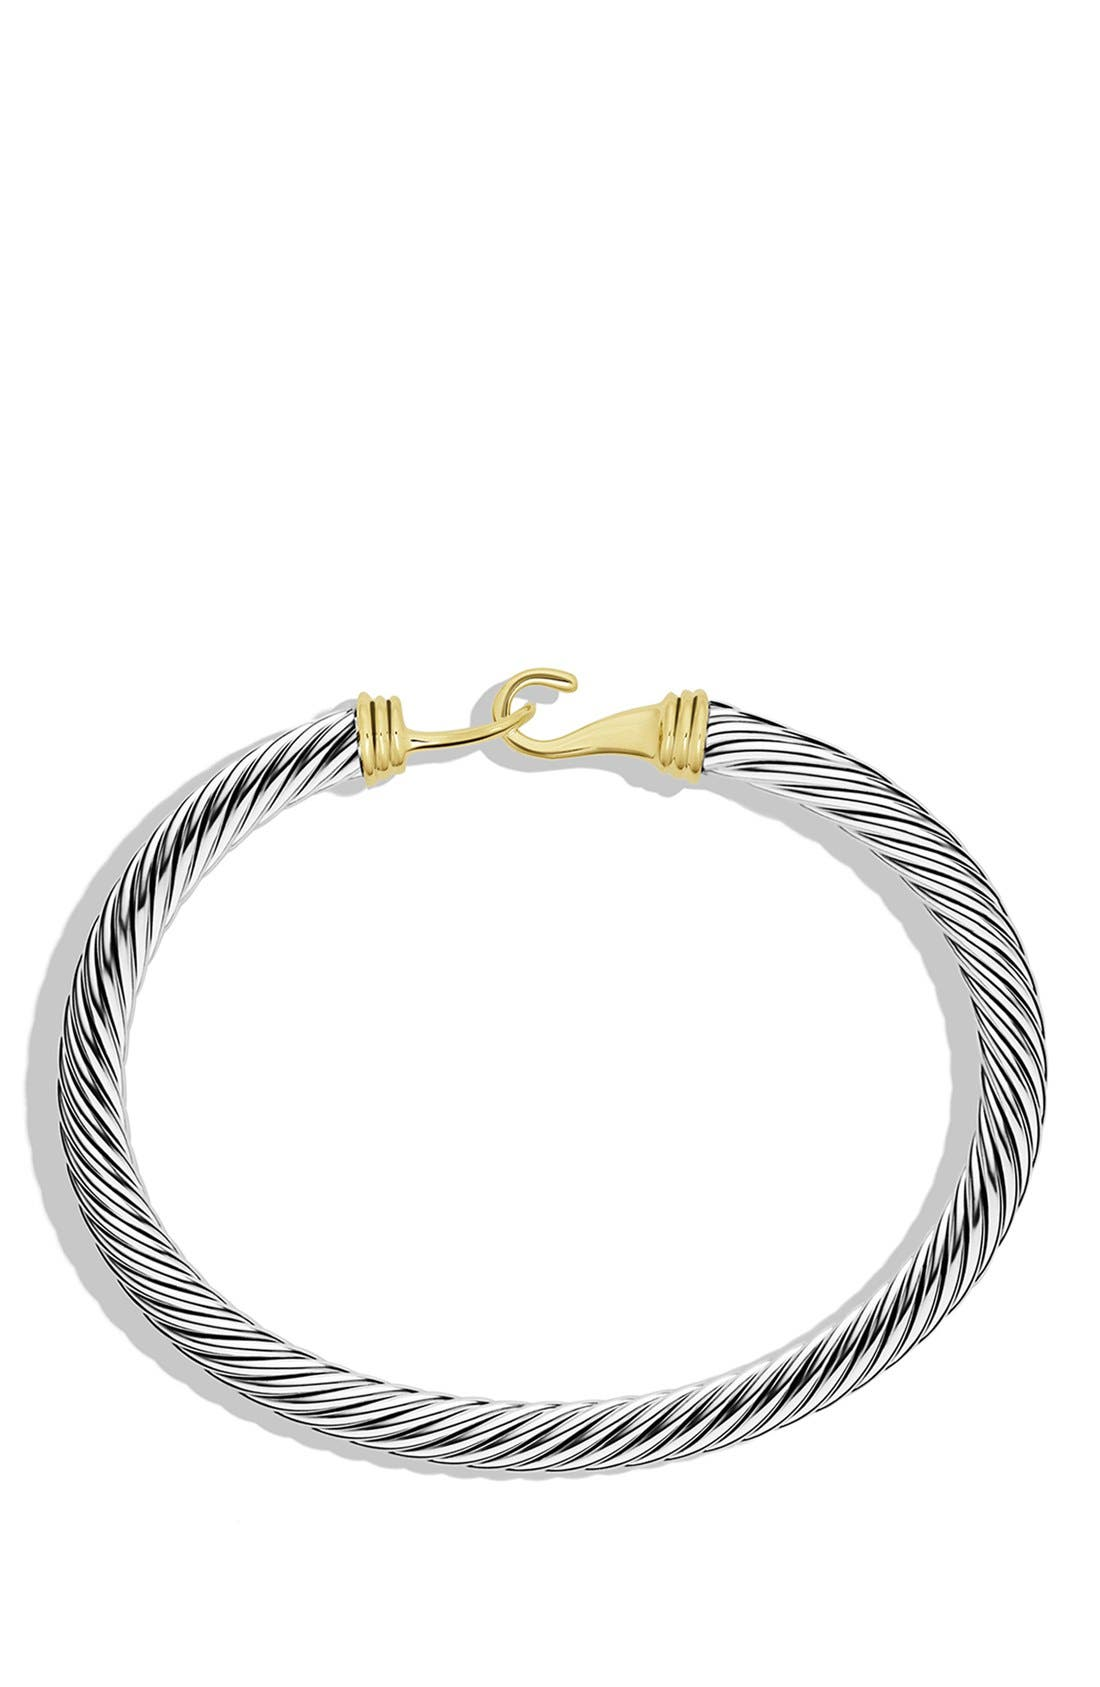 'Cable Buckle' Bracelet with Gold,                             Alternate thumbnail 2, color,                             040